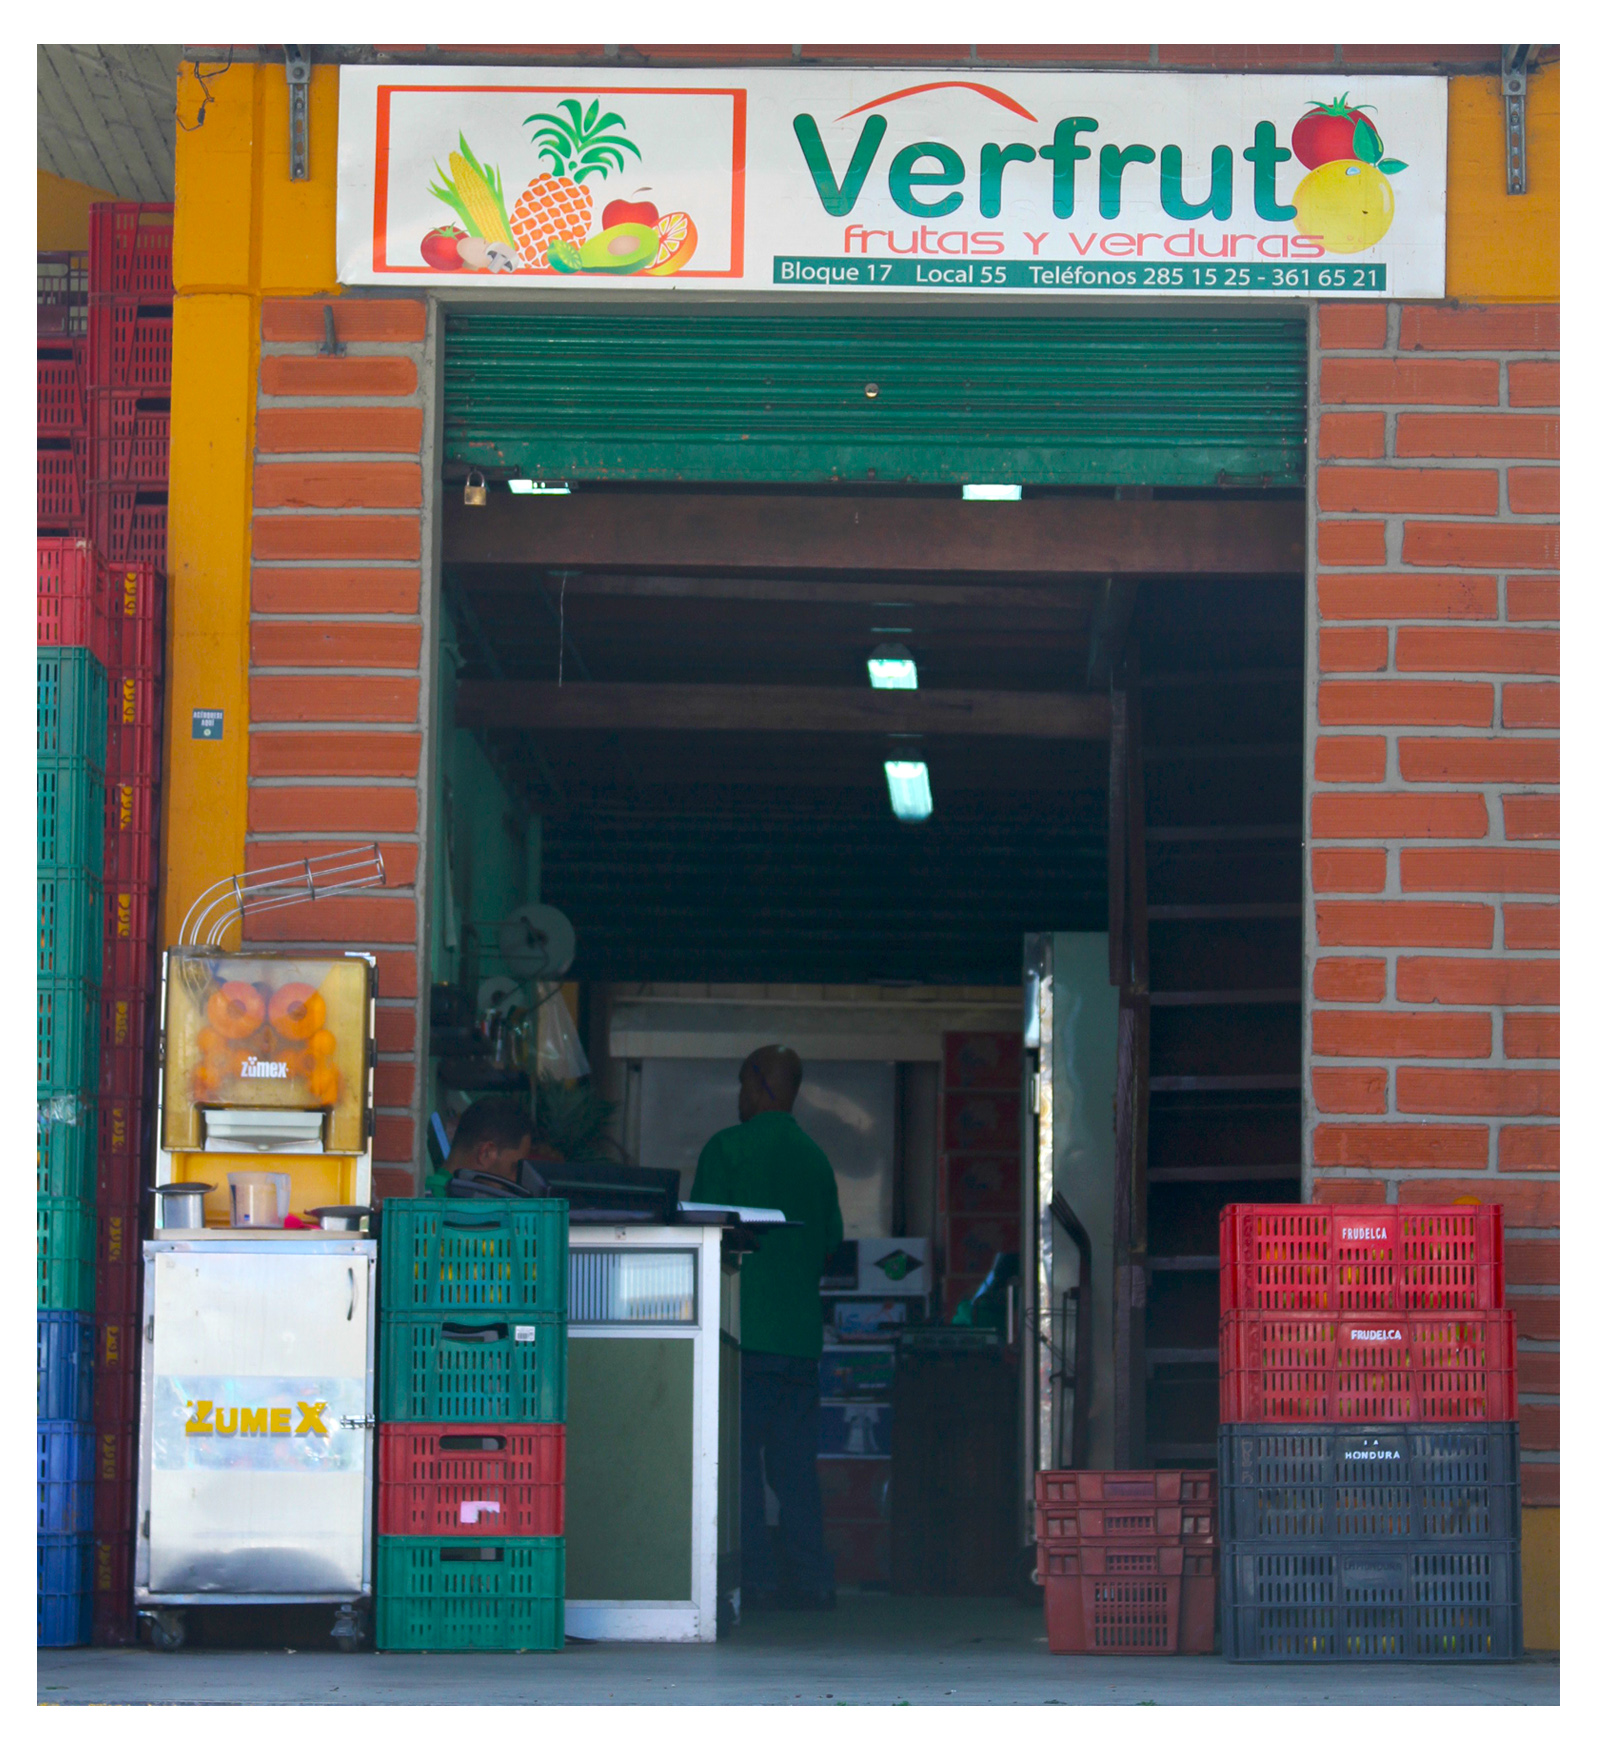 Verfrut copia